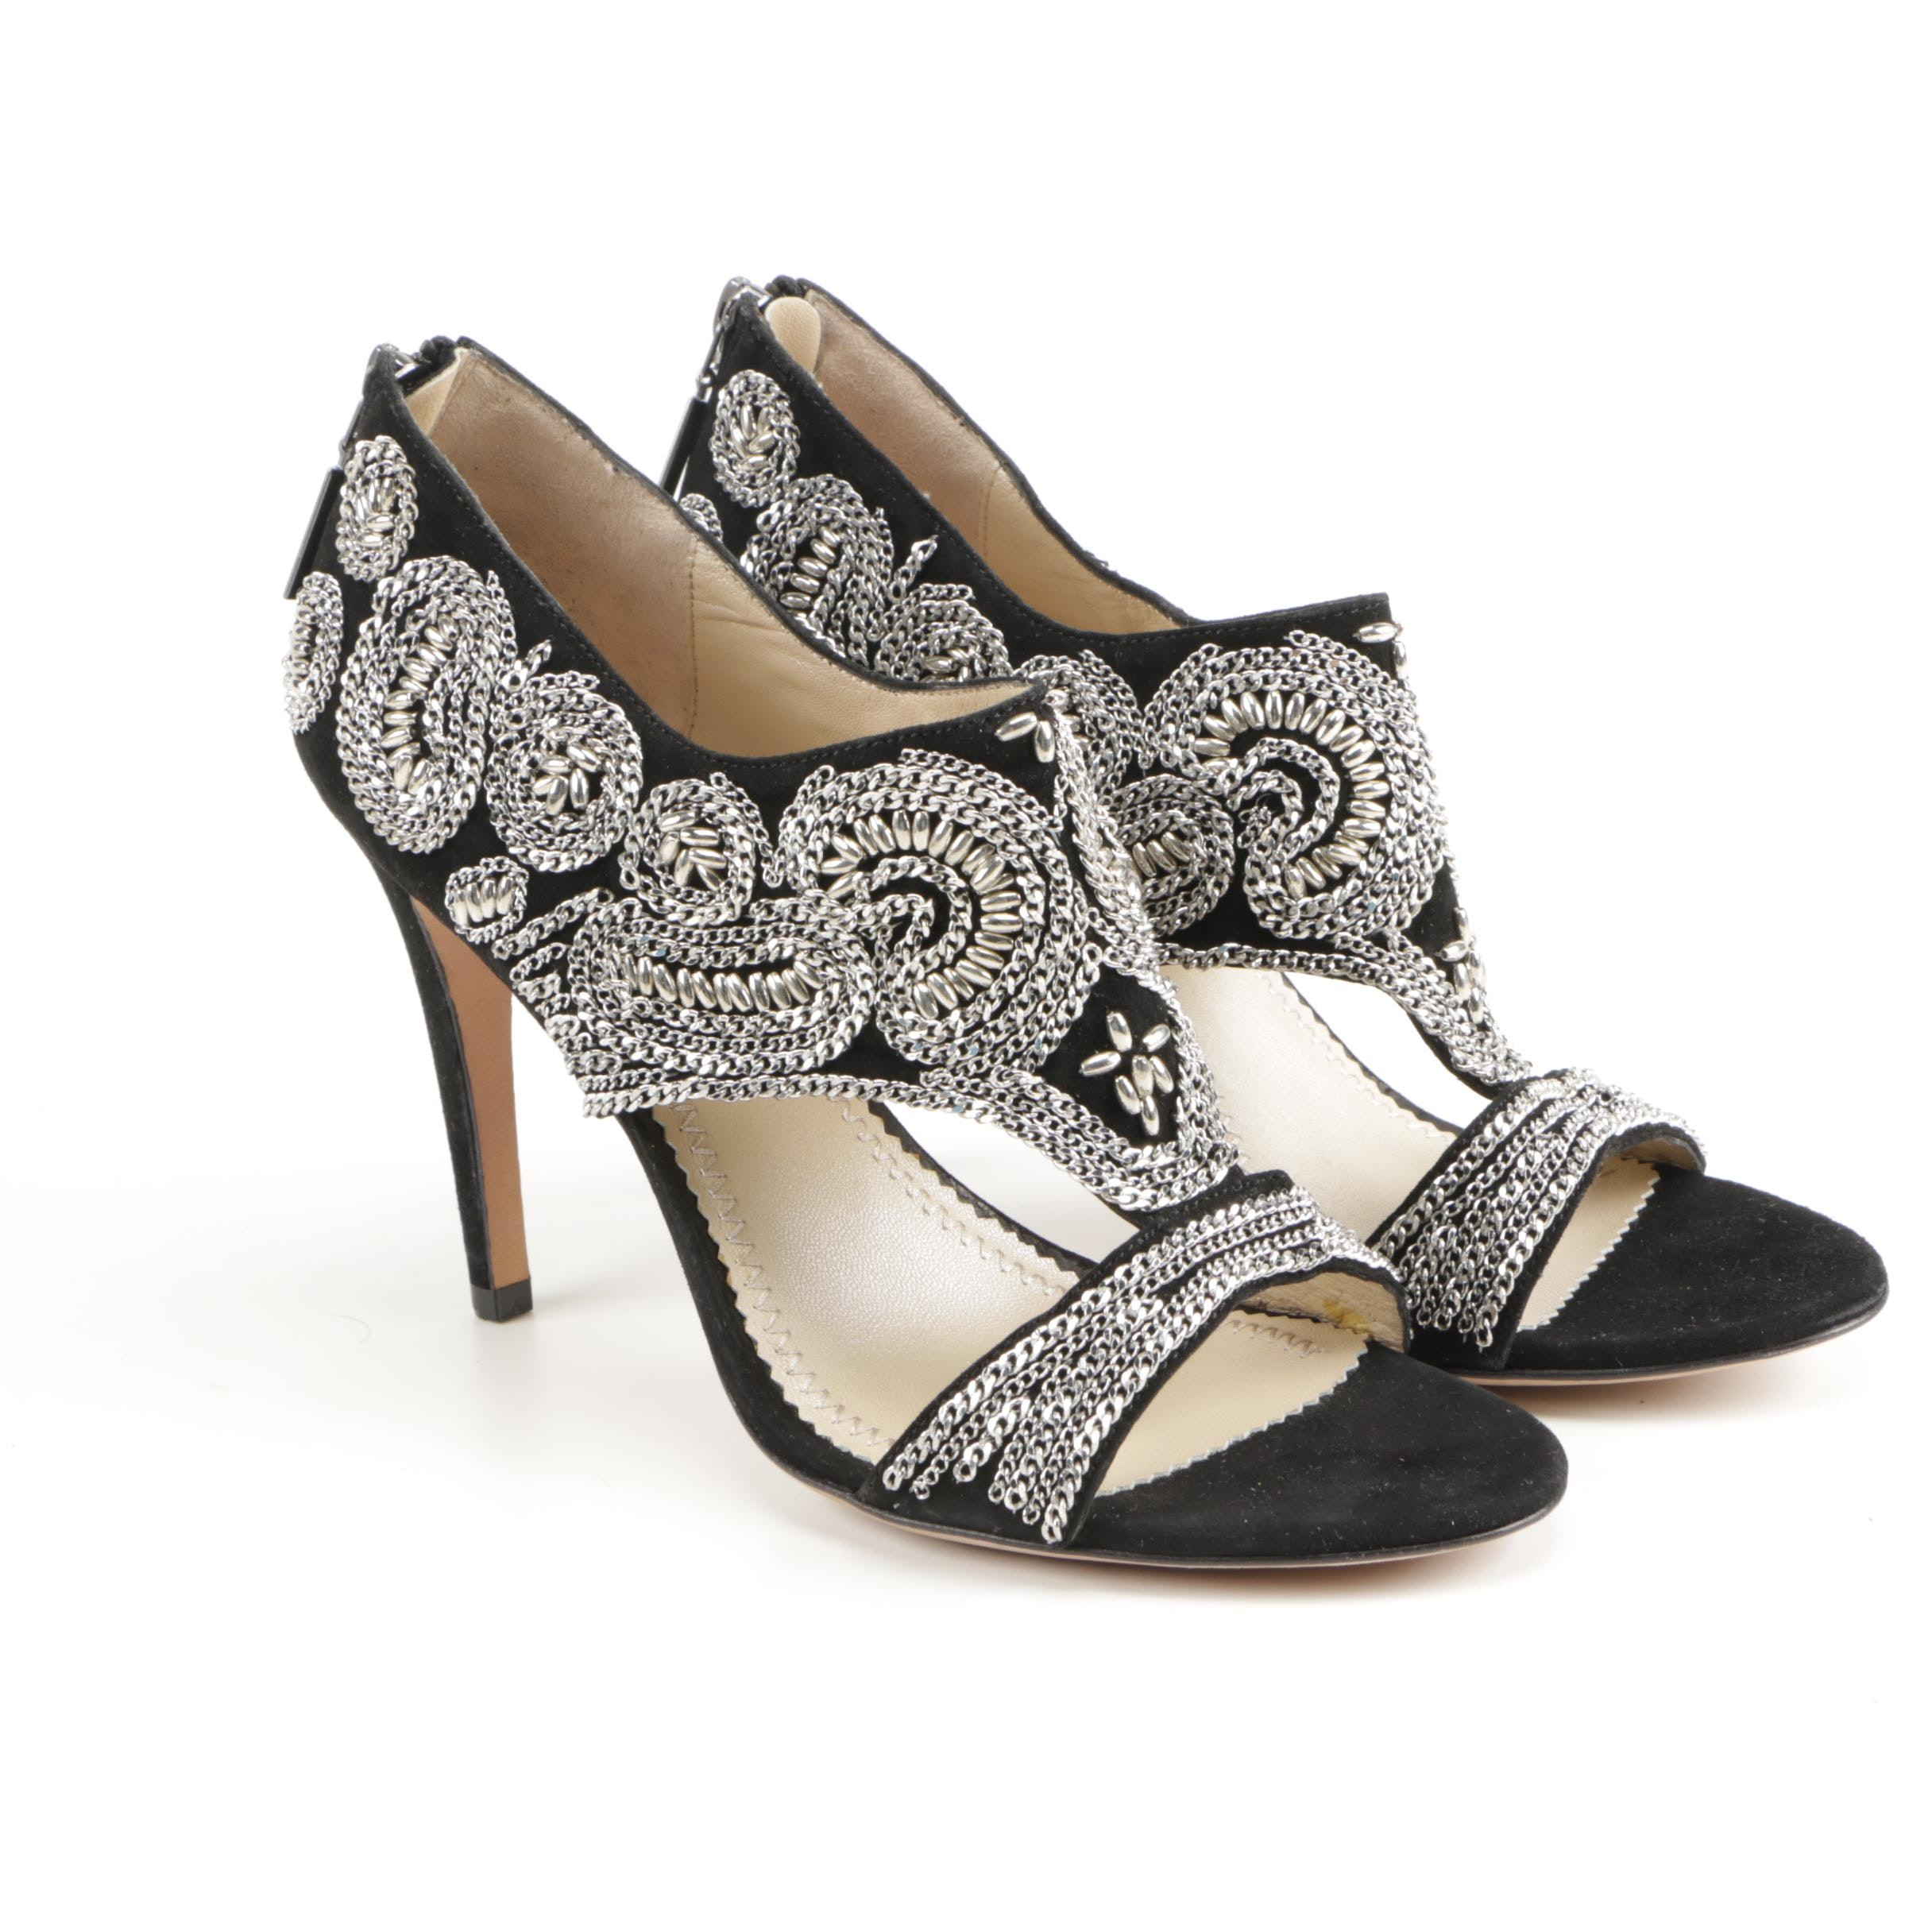 Jean-Michel Cazabat Embellished Suede Pumps